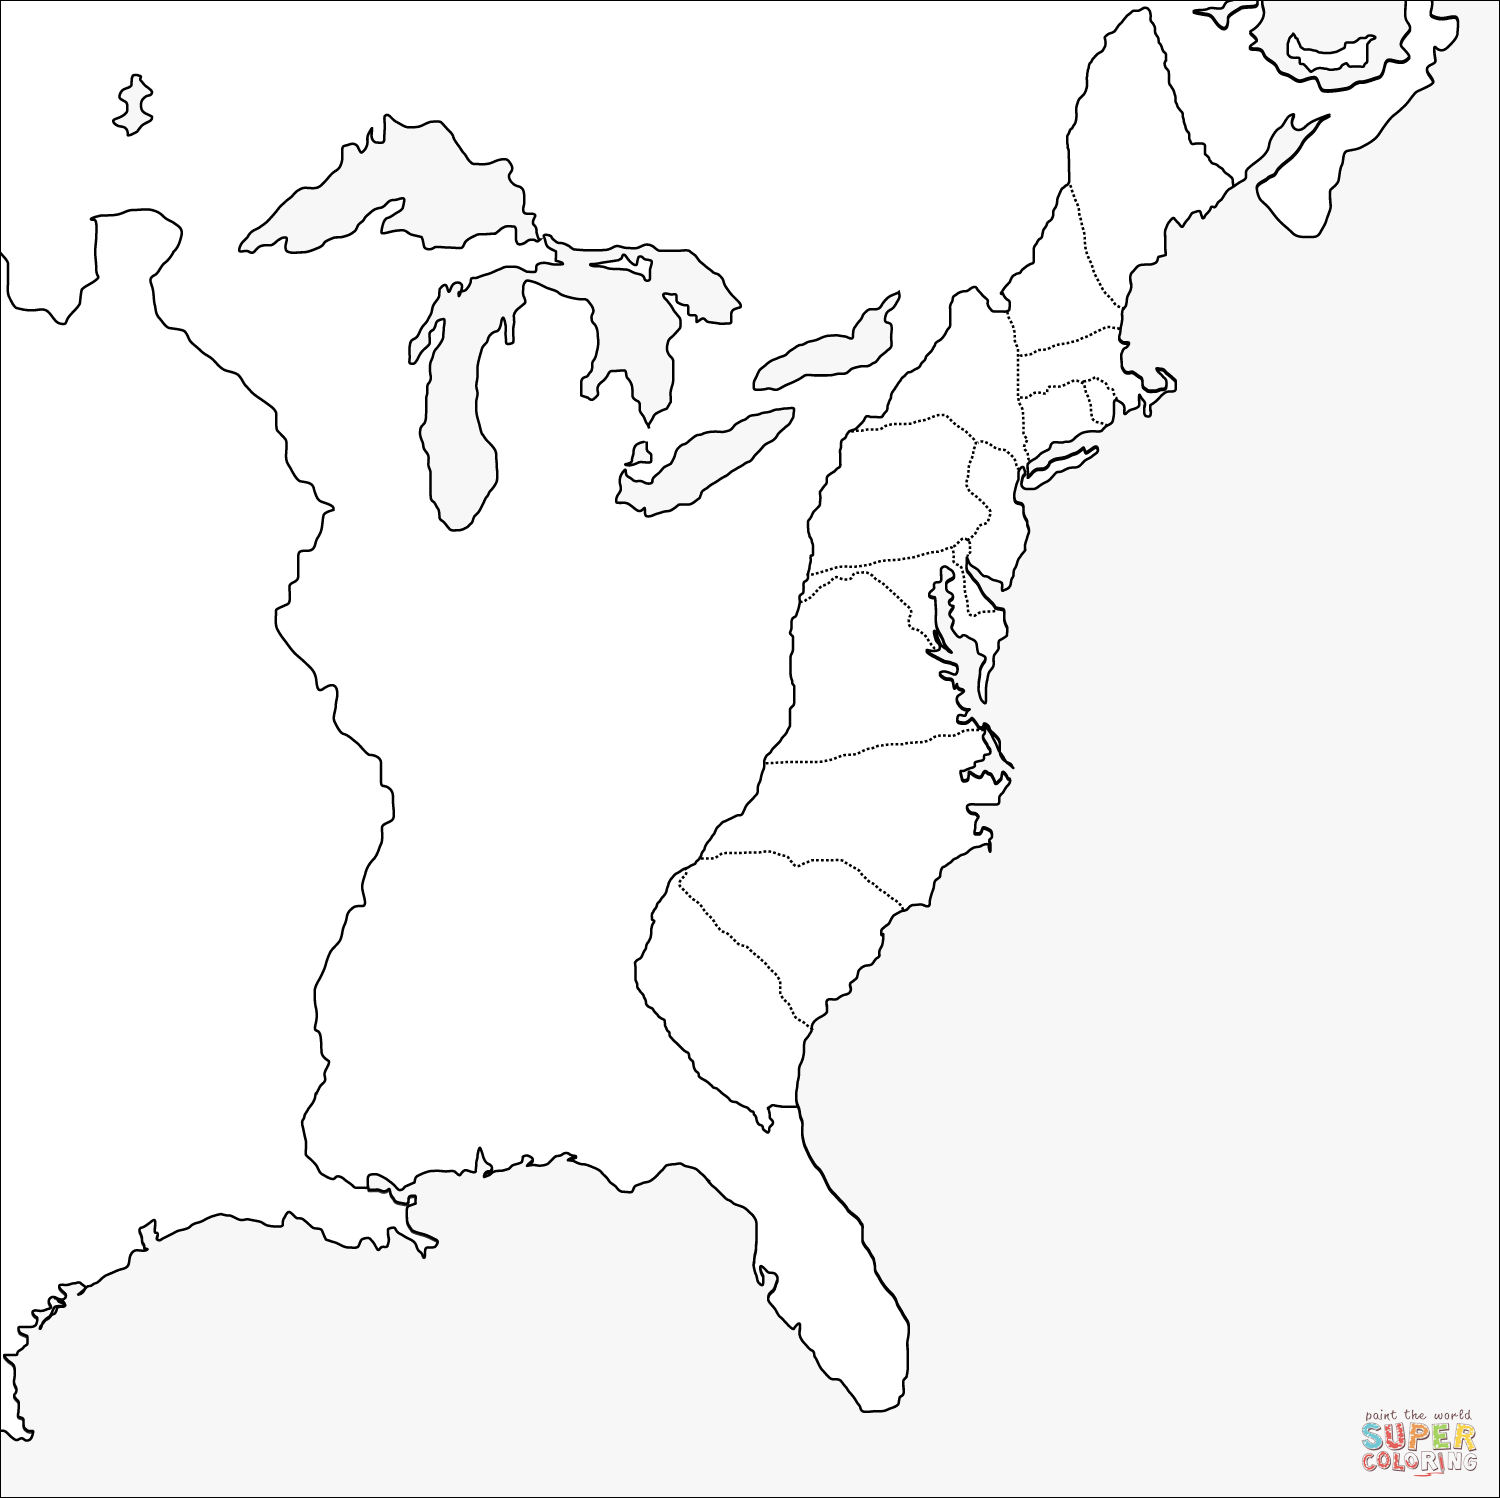 13 Colonies Fill In Thye Blank